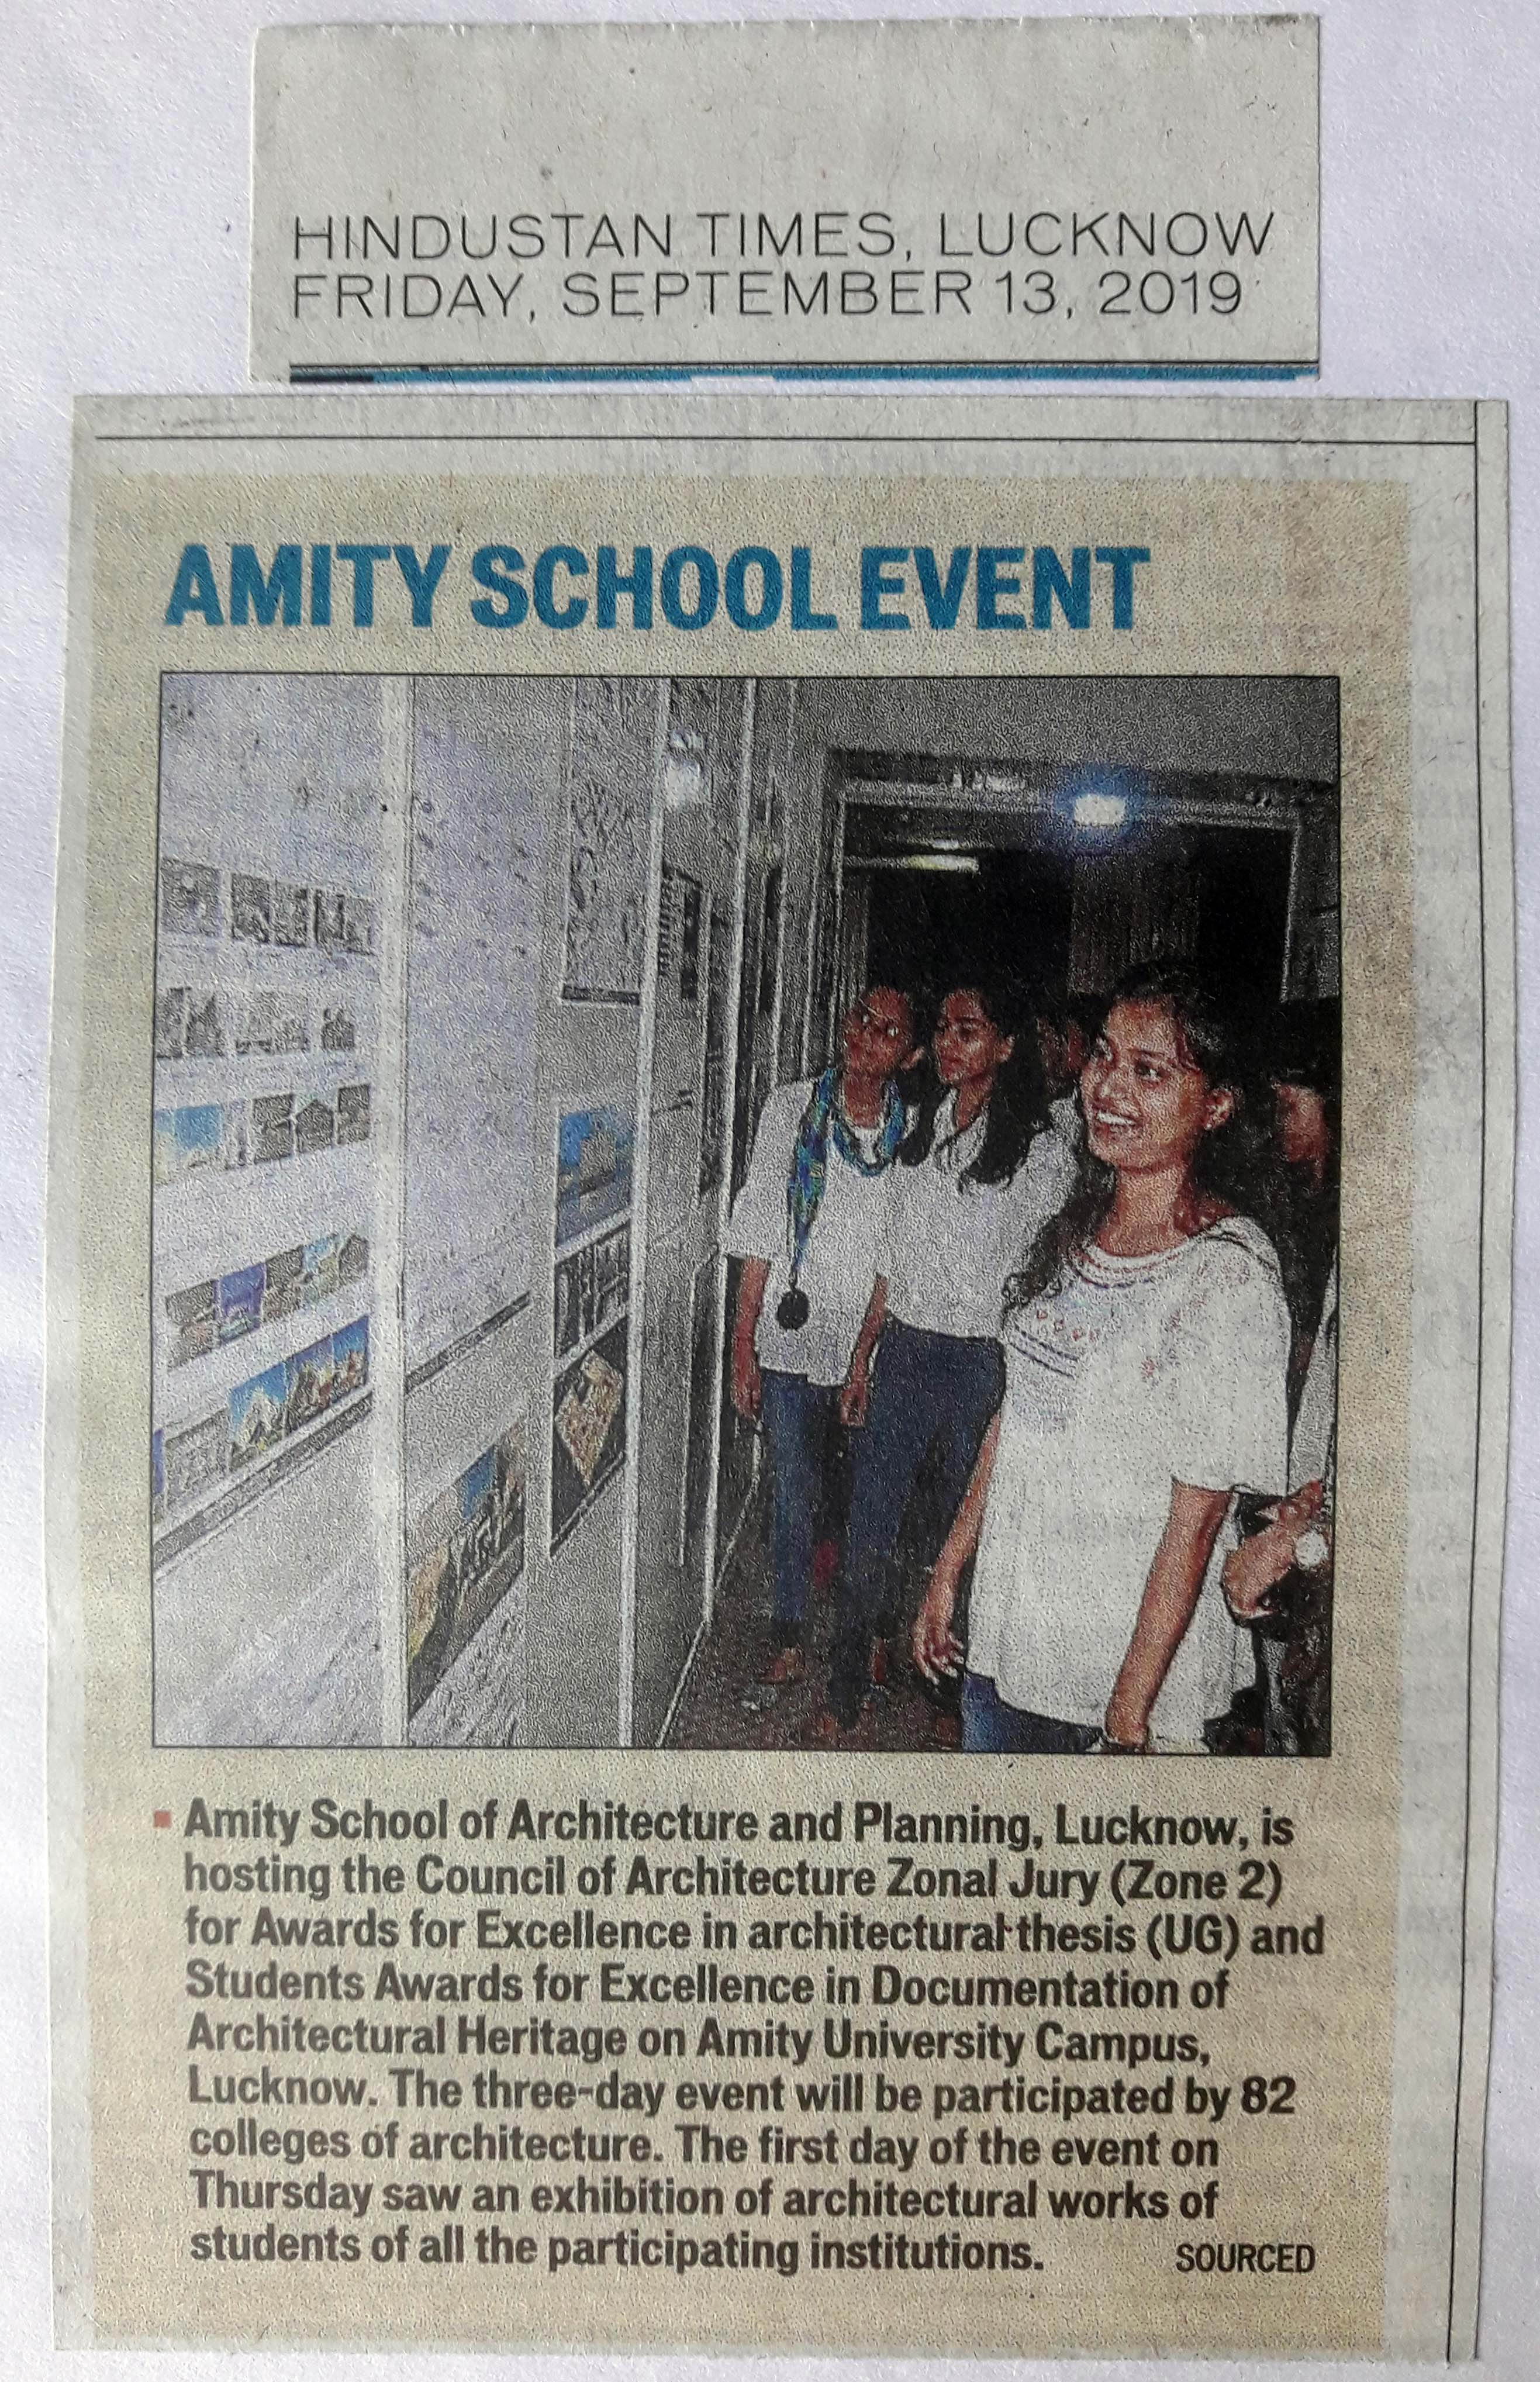 Amity University hosted Council of Architecture Zone 2 Awards and Exhibition